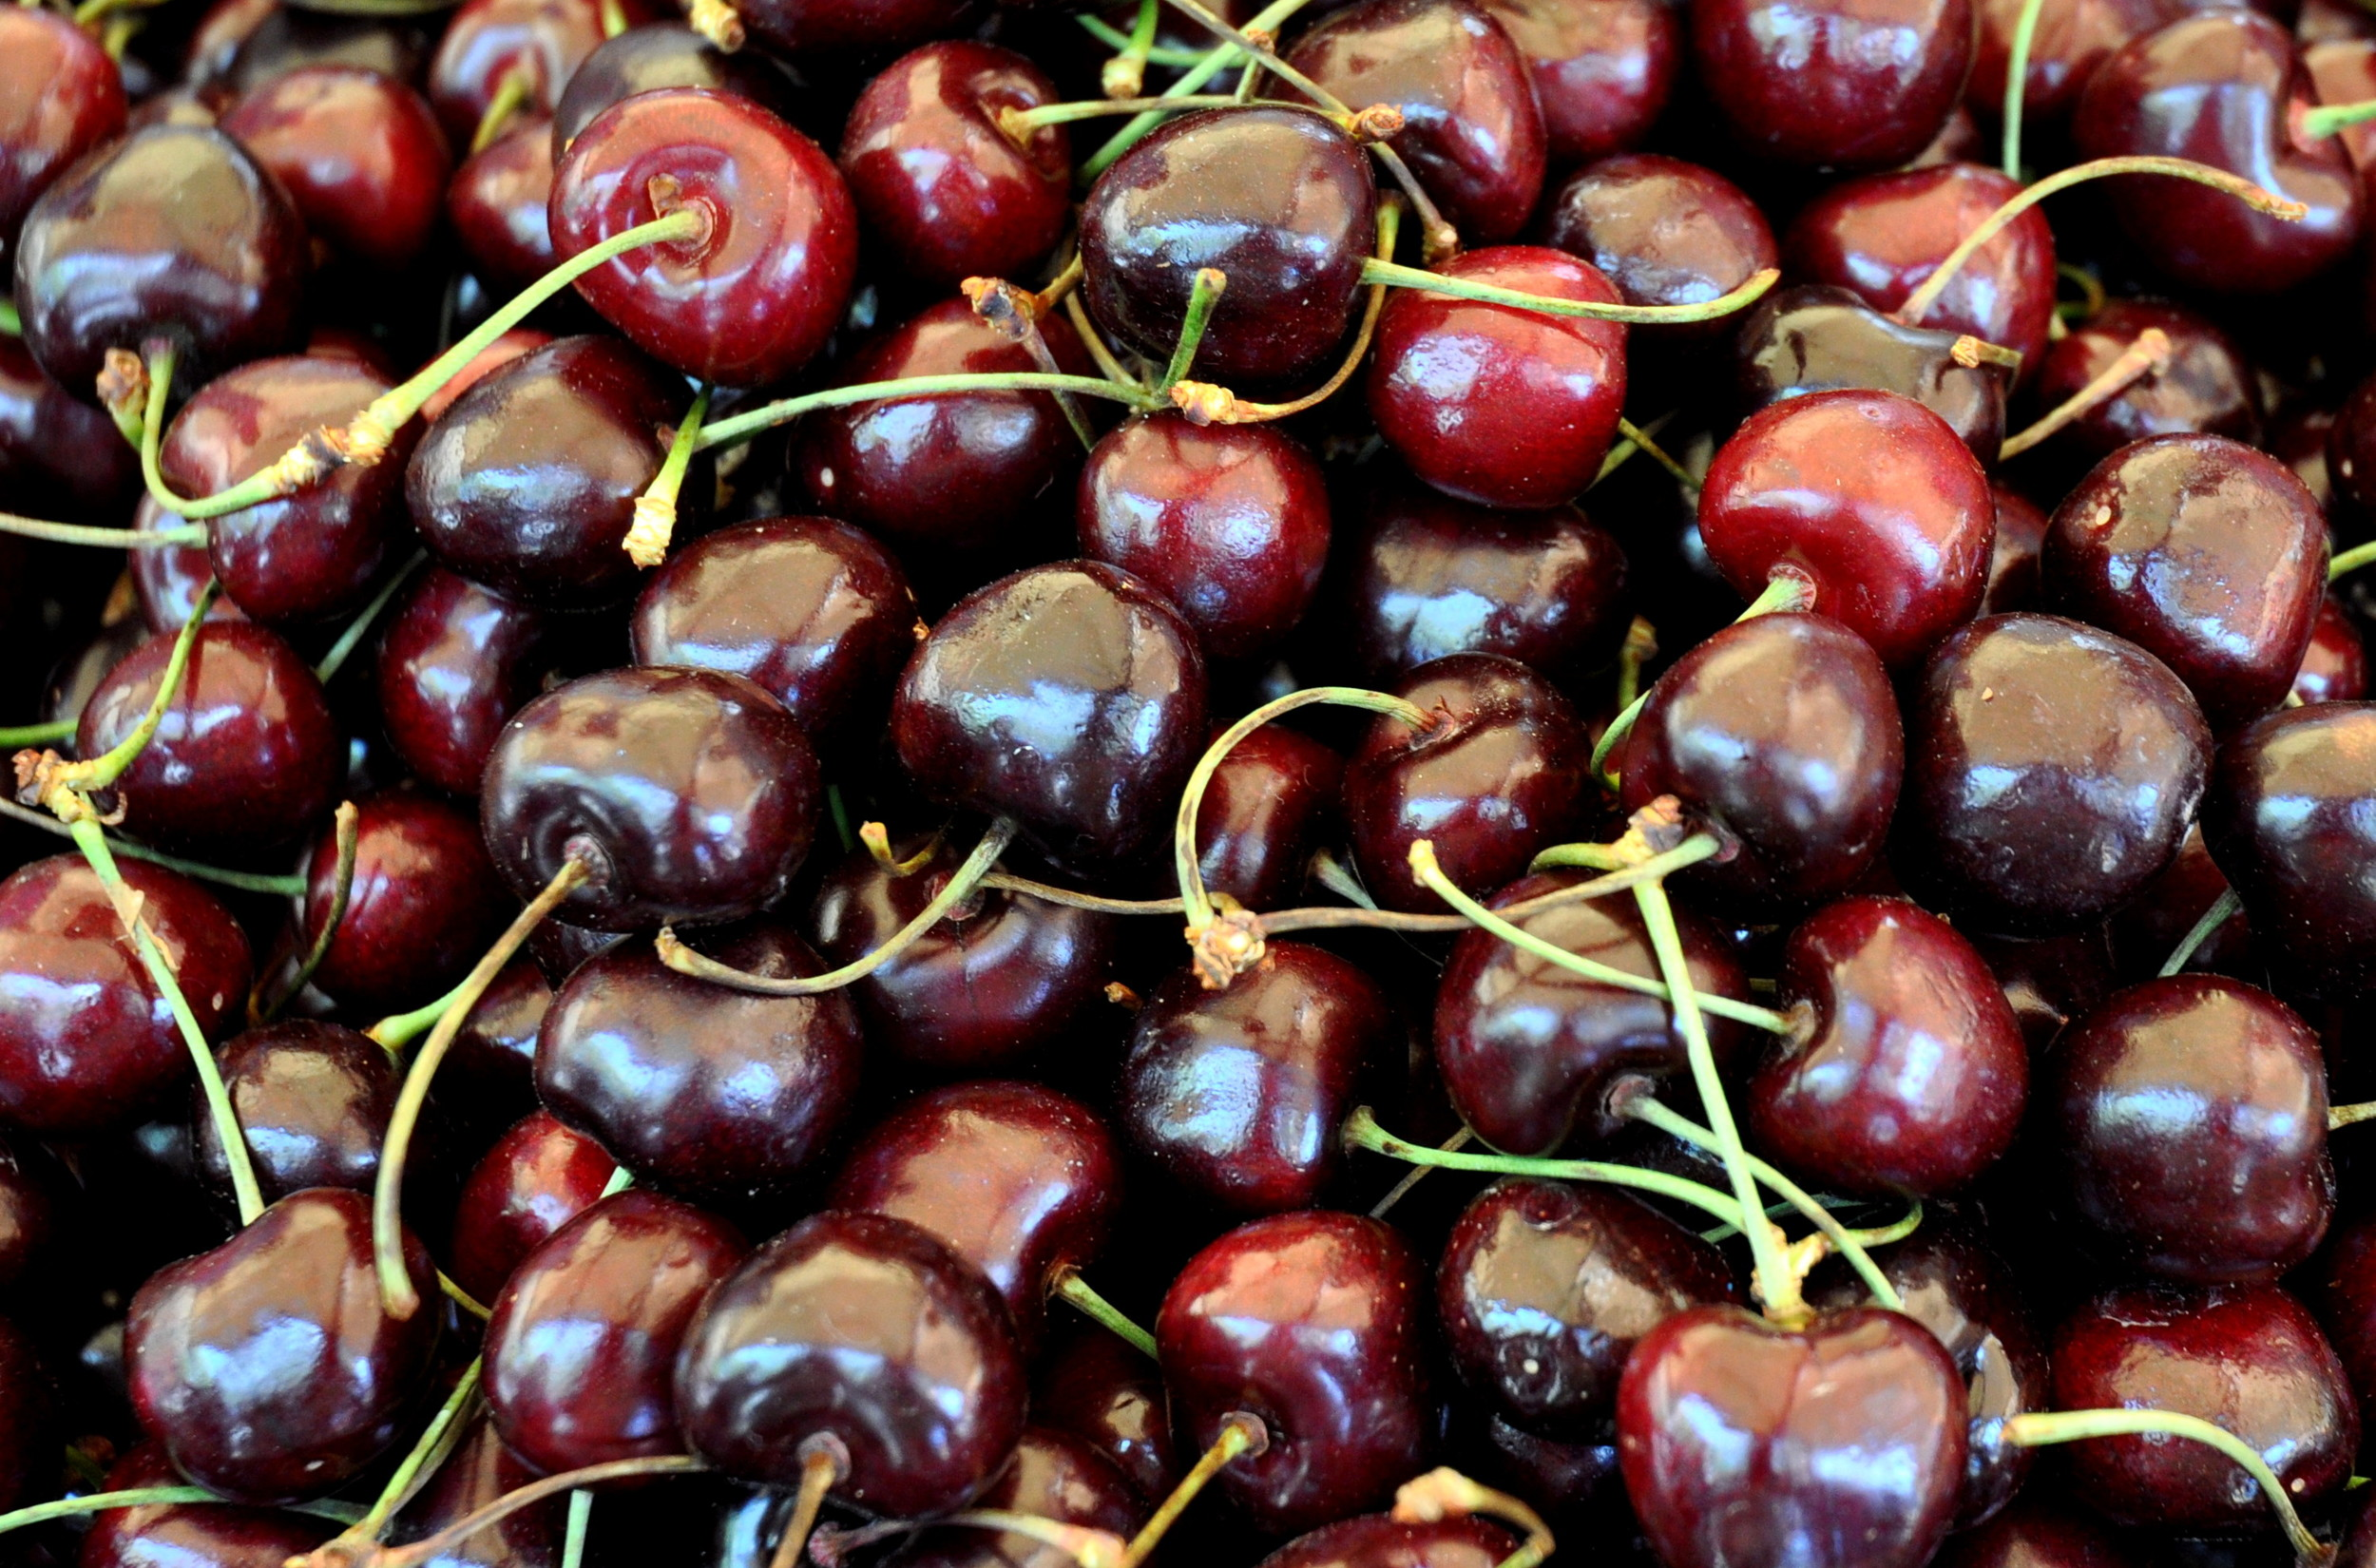 Chelan cherries from Collins Family Orchards. Photo copyright 2012 by Zachary D. Lyons.